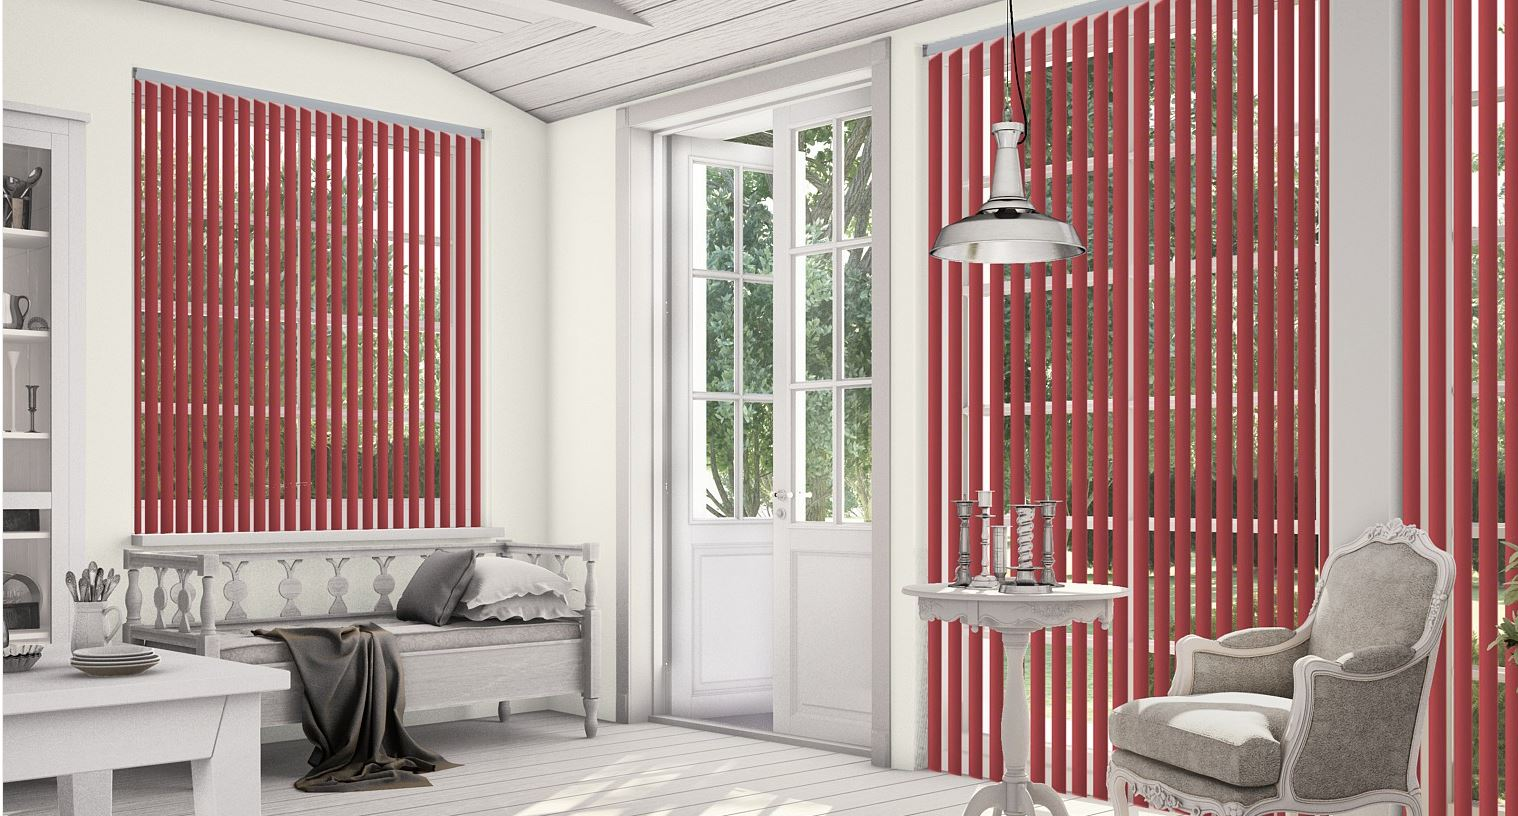 Palette Redcurrant Vertical Blinds in a conservatory